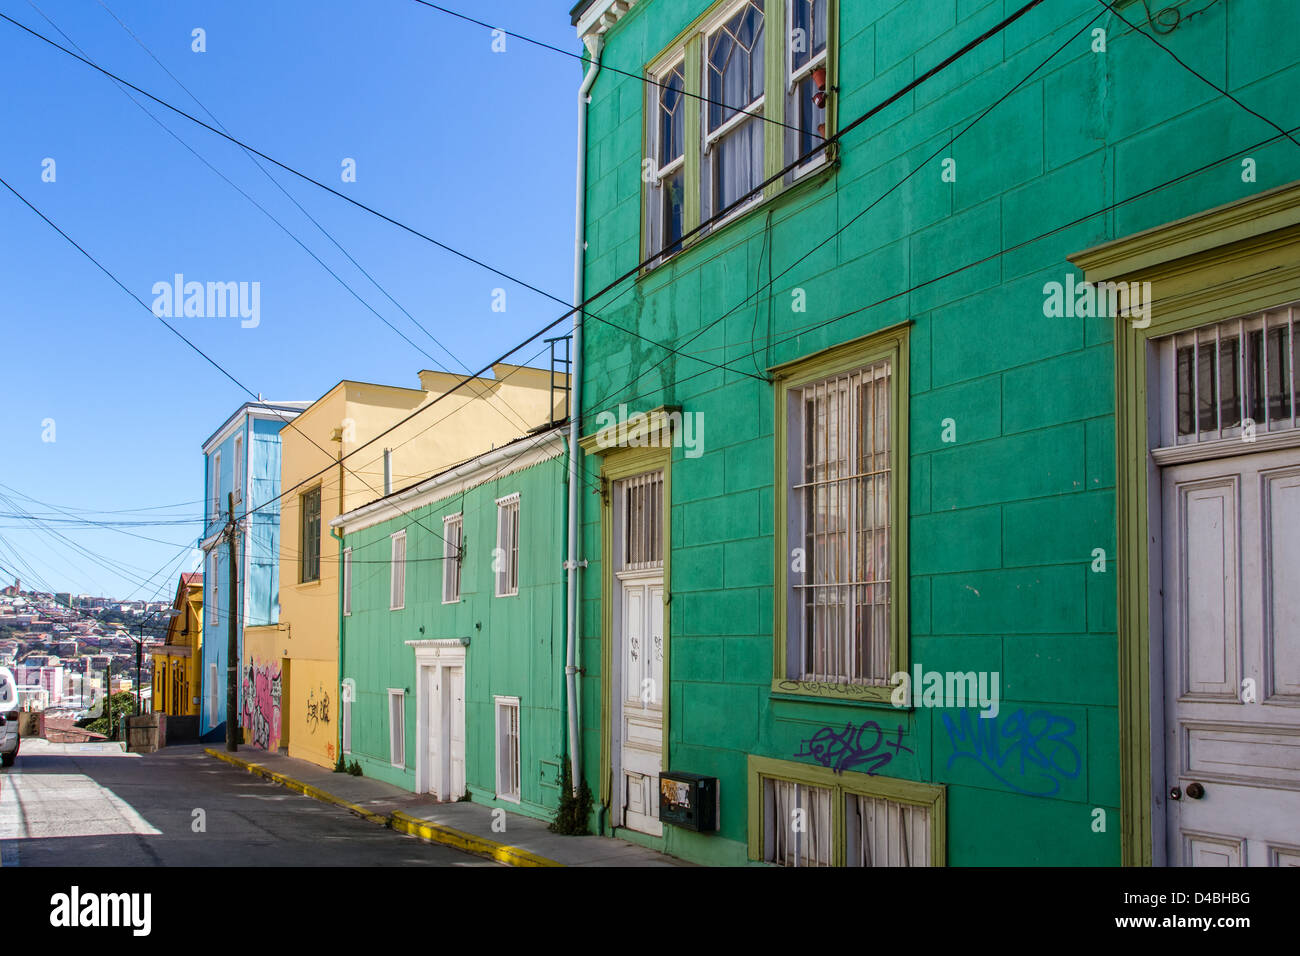 The vibrant streets of Valparaiso, Chile, UNESCO World Heritage site - Stock Image